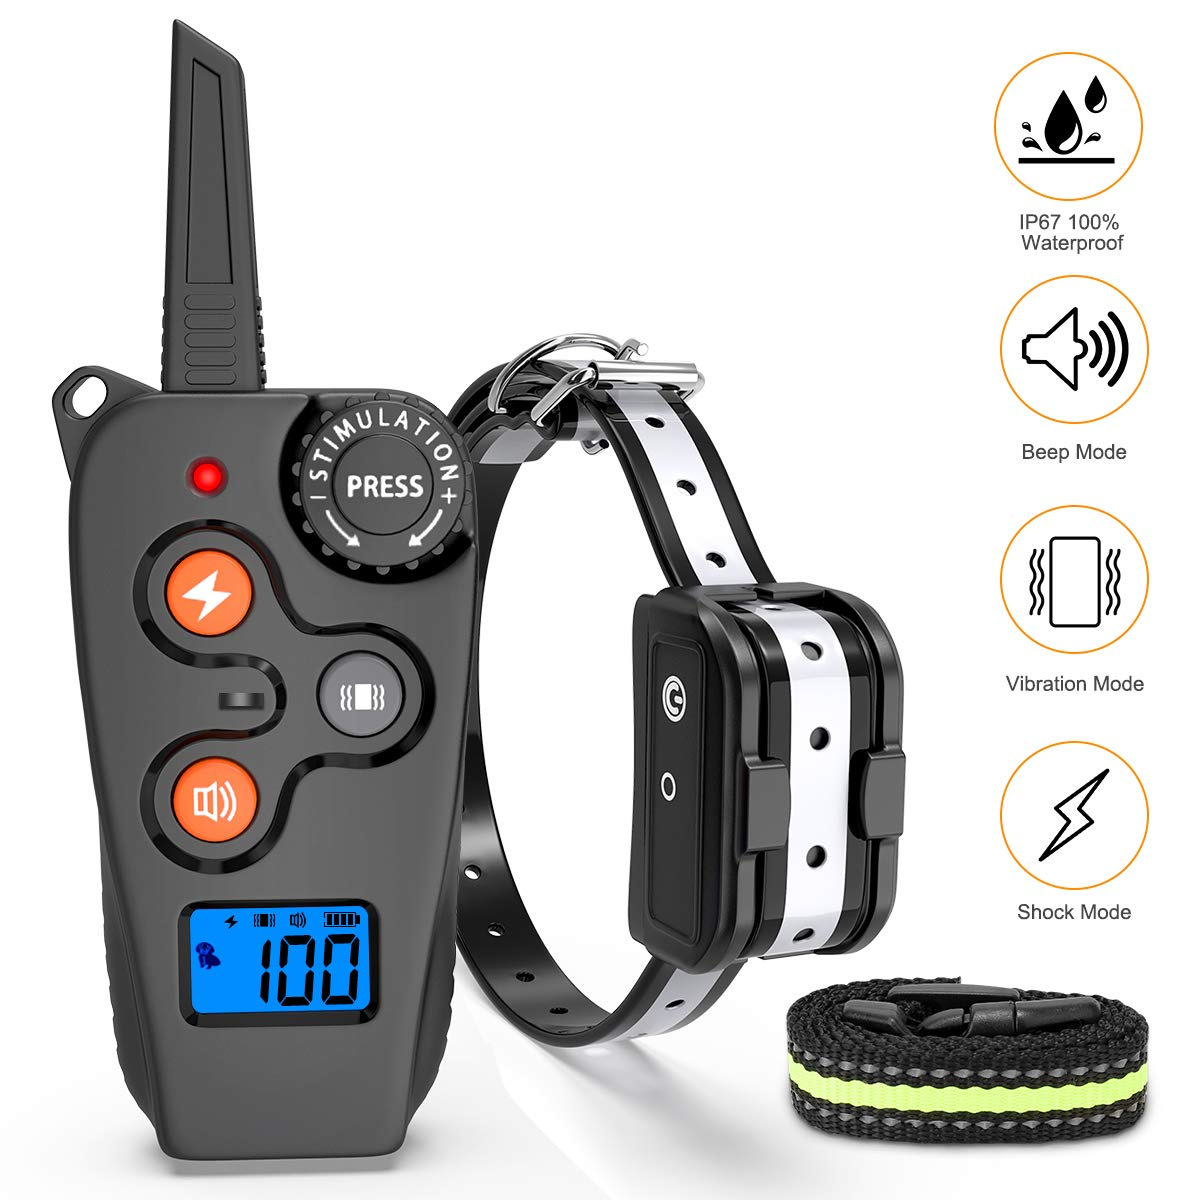 oneisall Shock Collar for Dogs, Rechargeable Dog Training Collars Bark Collar with Remote for Small Medium Large Dogs by oneisall